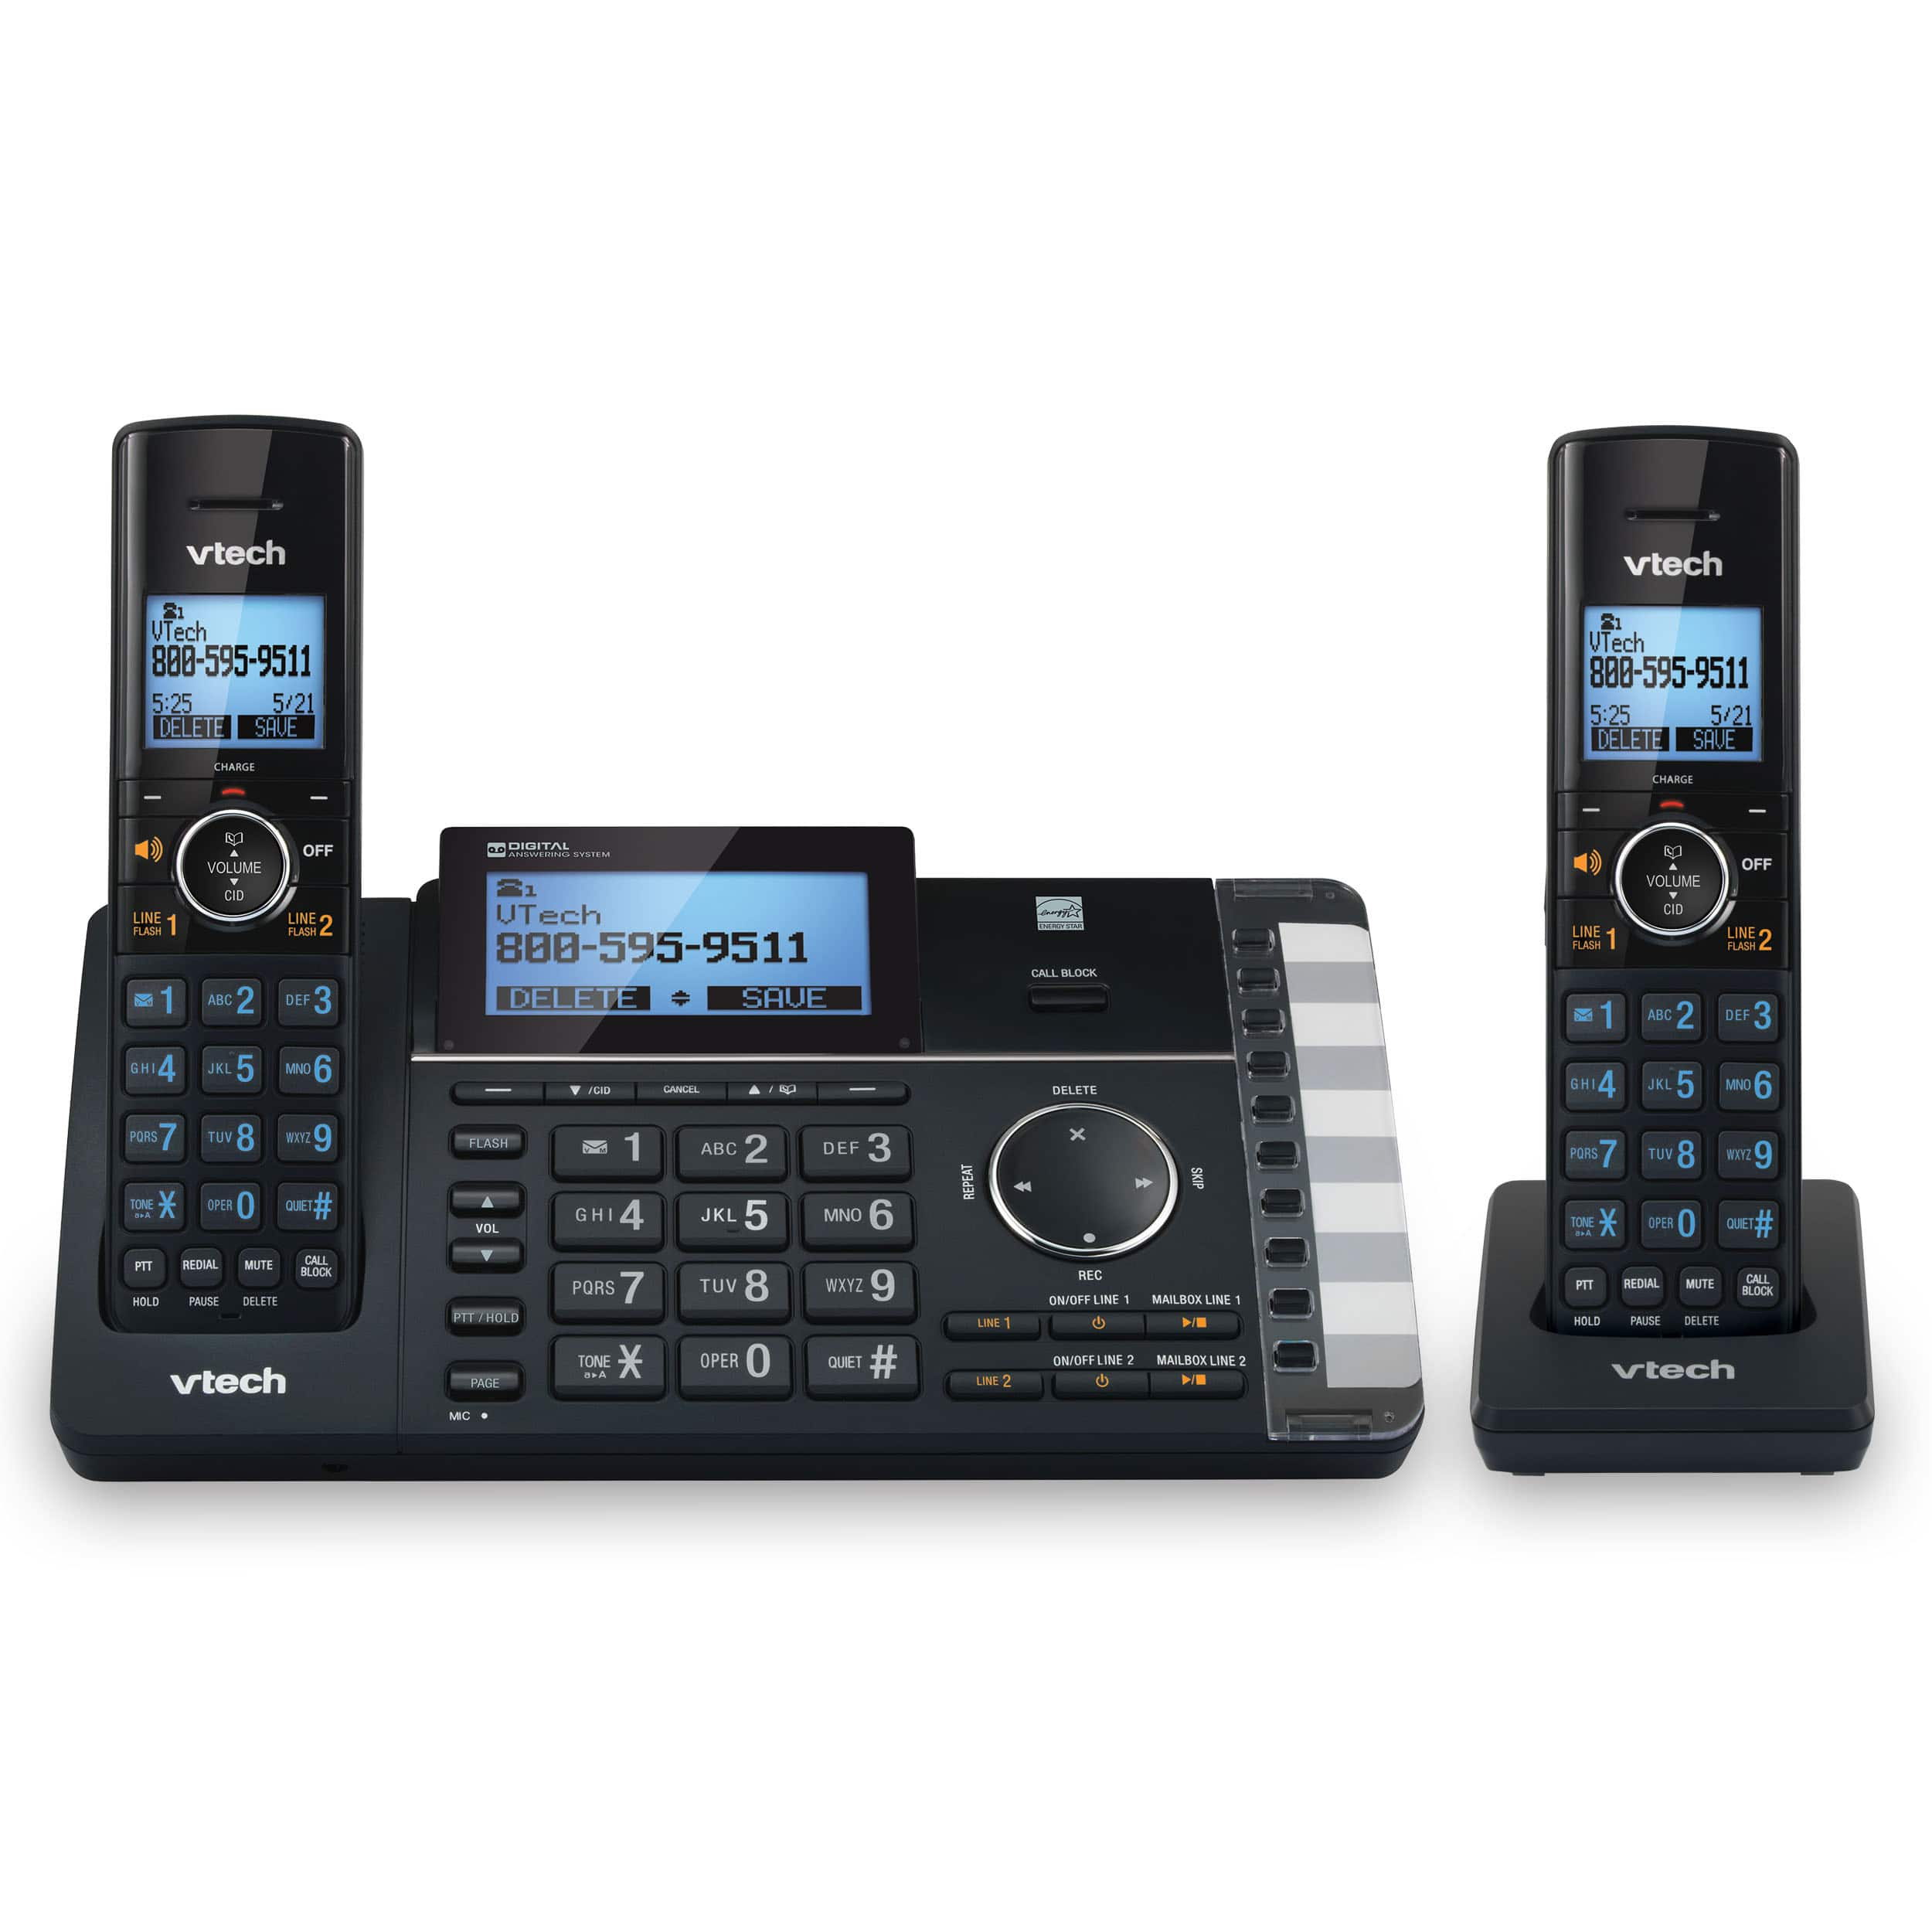 2 Line Handset Cordless Phone With Answering System Smart Call Blocker Ds6251 Vtech Phones